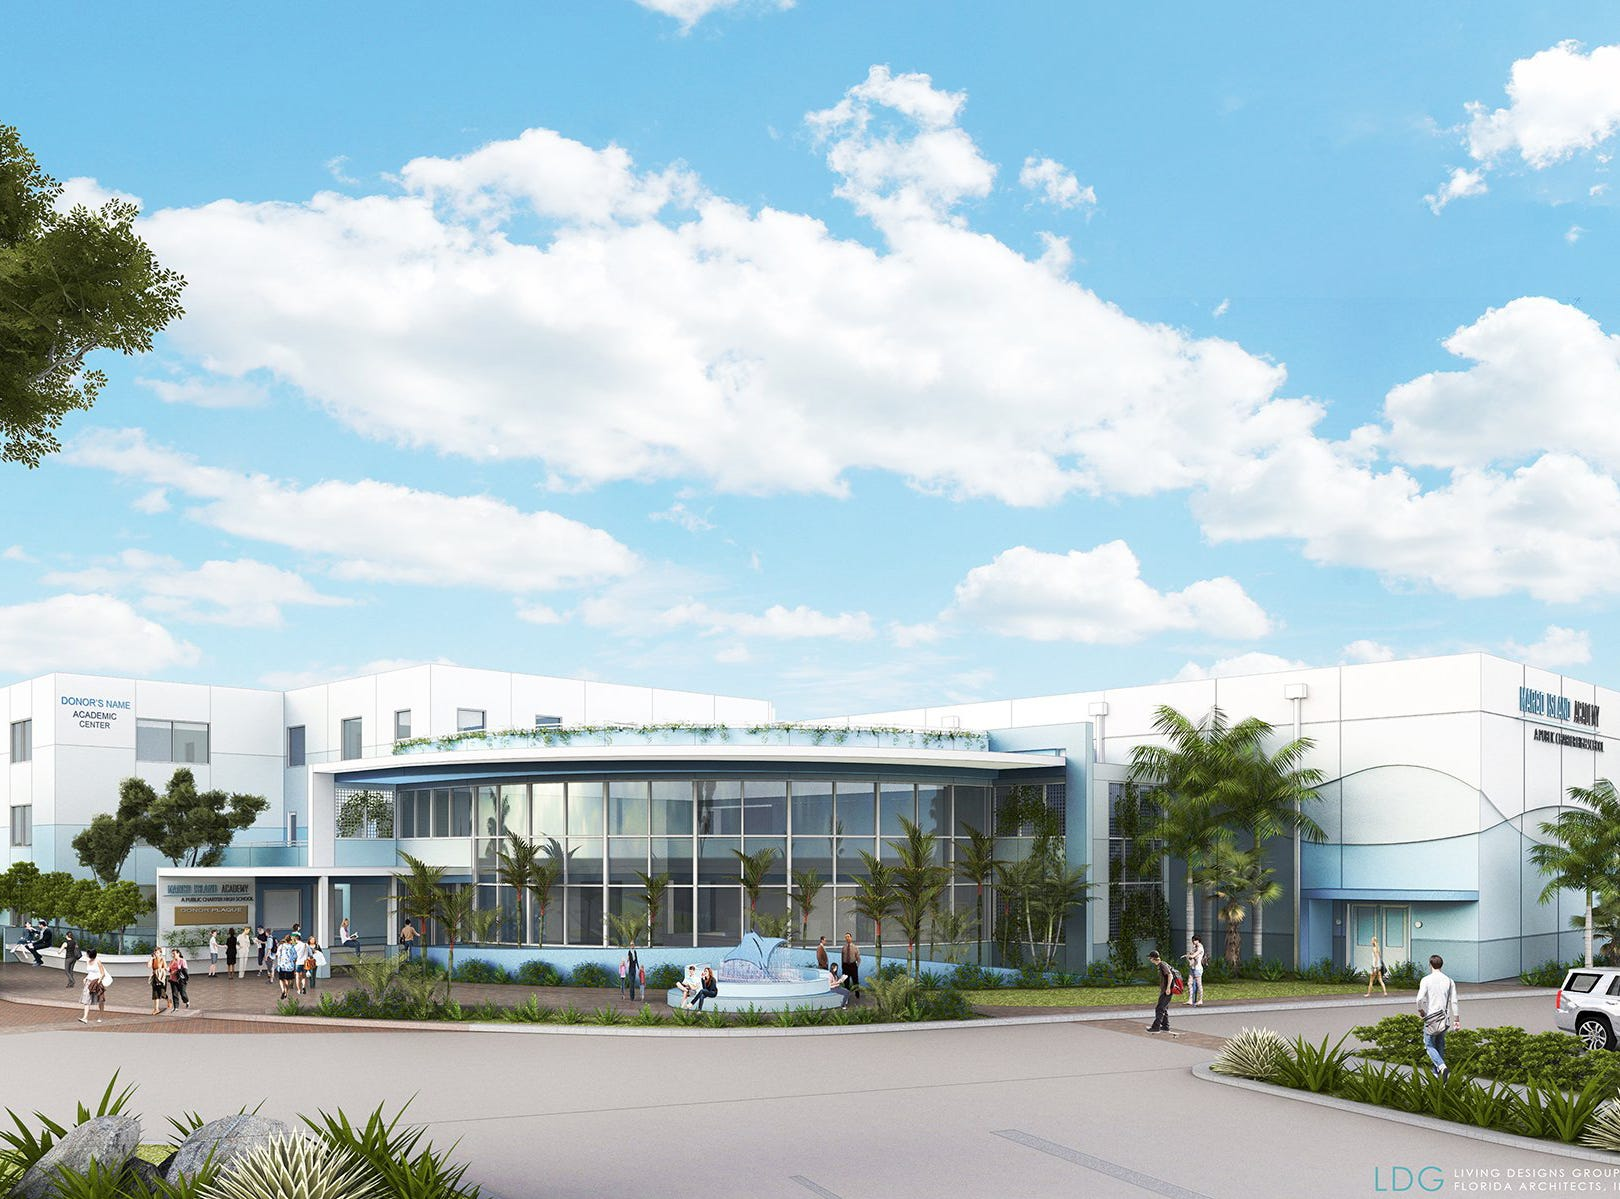 A rendering shows the proposed academic center. Marco Island Academy is embarking on a capital campaign to raise millions of dollars and give the school a permanent home, after years of operating in prefab modules.